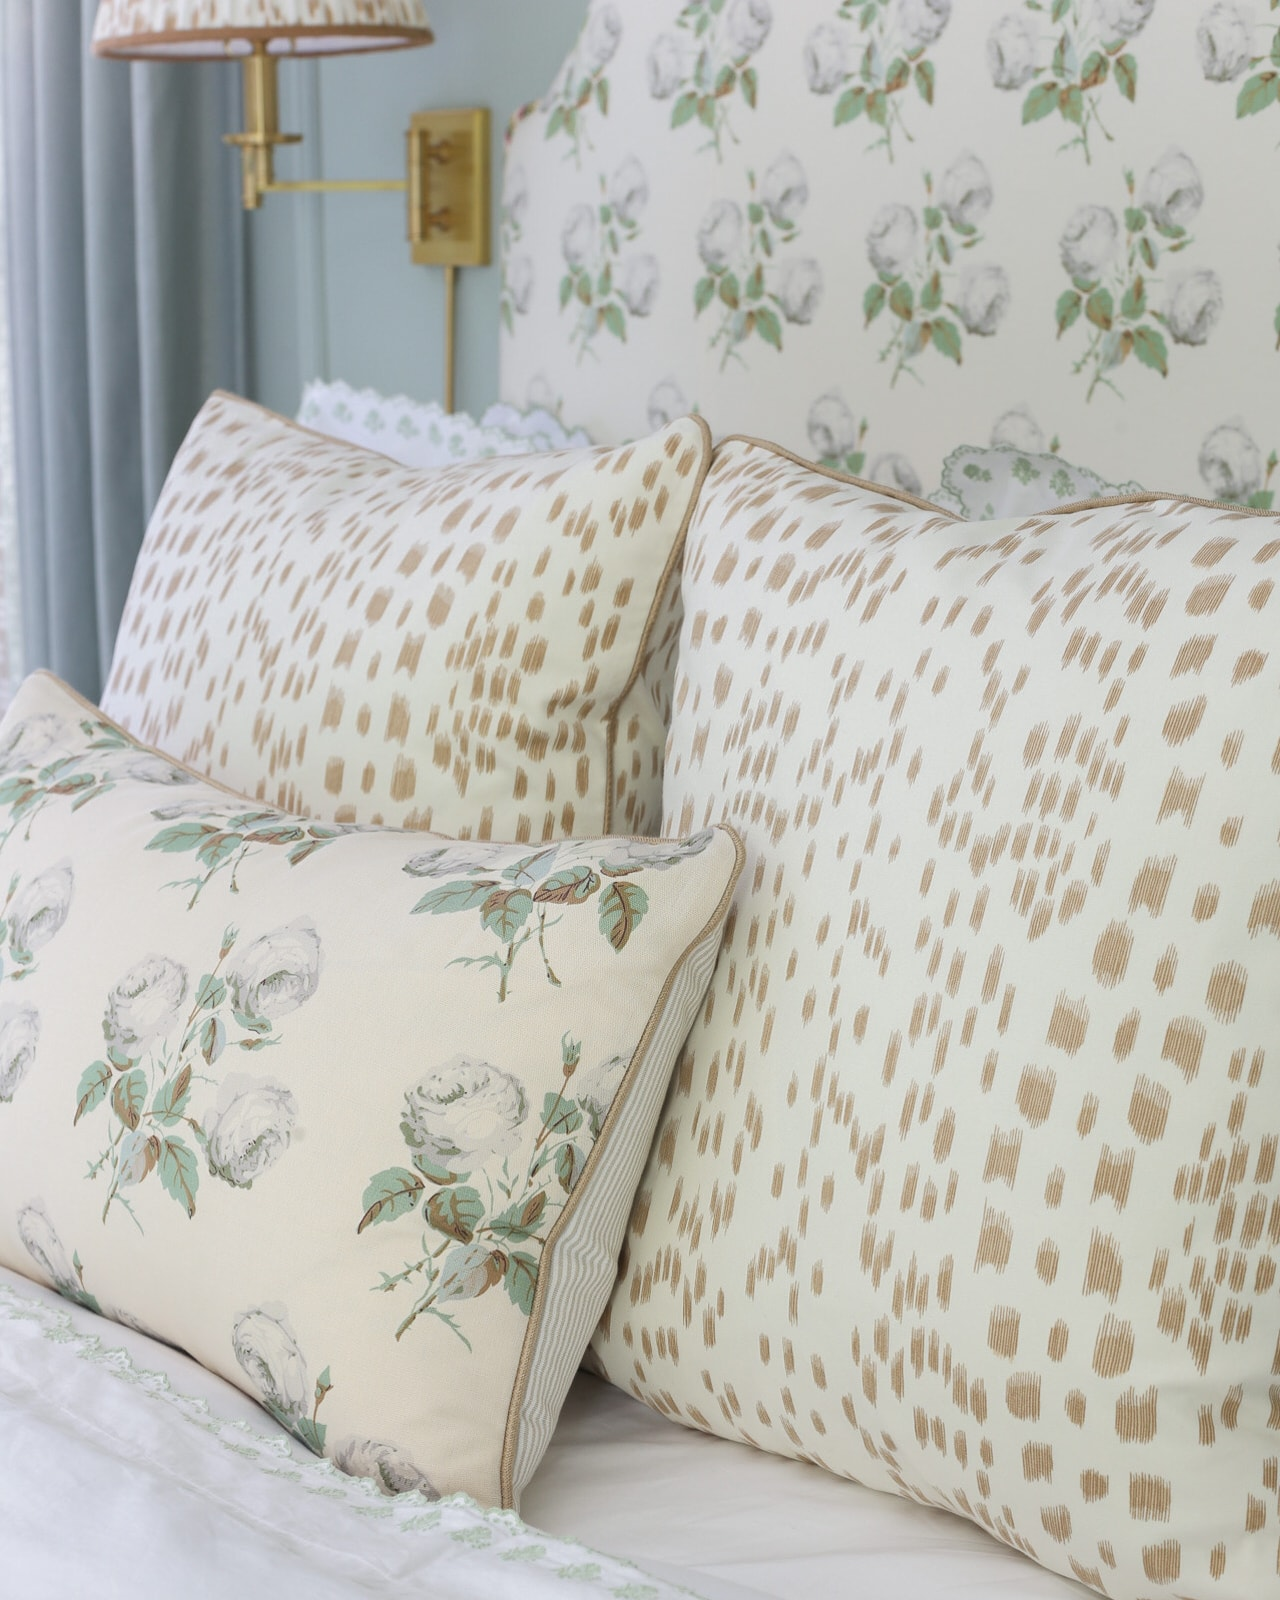 les-touches-pillows-bowood-pillow-bedroom